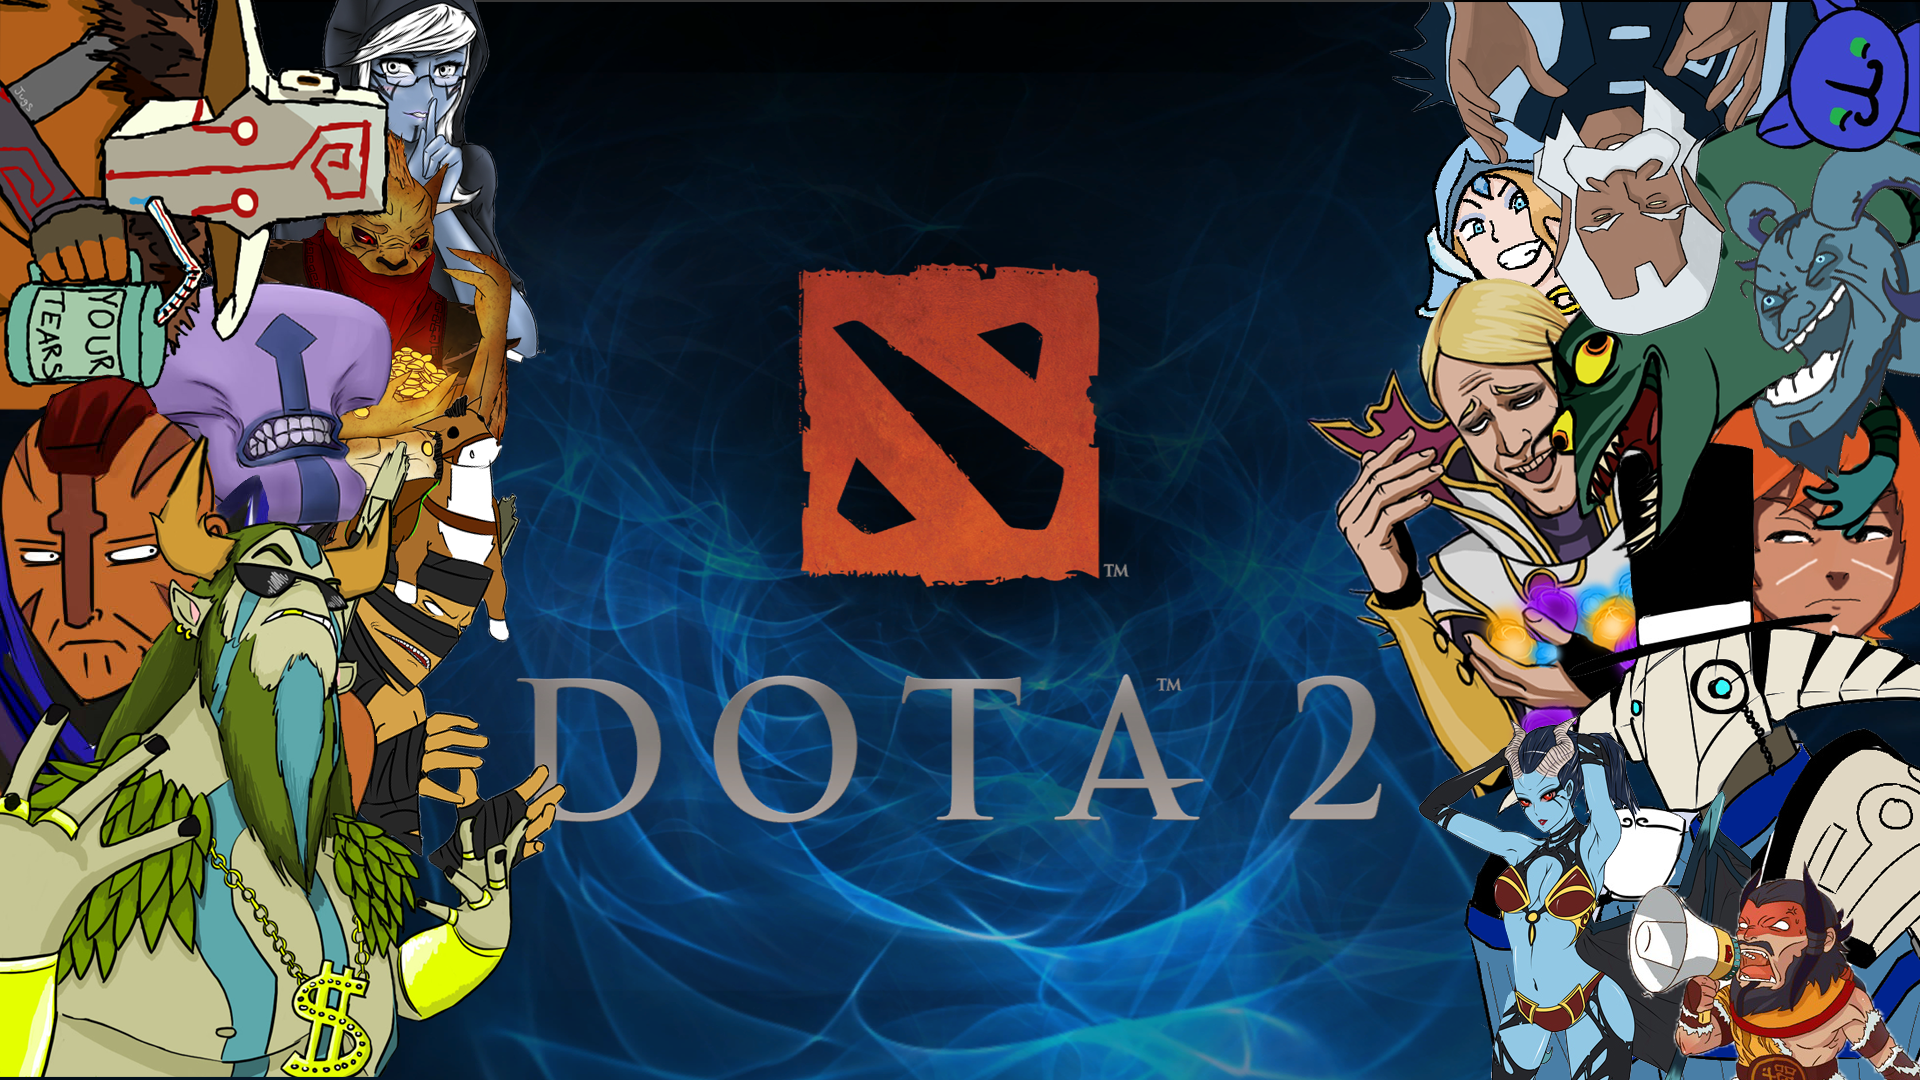 ... Coders | Wallpaper Abyss Everything Dota Video Game DotA 2 350231